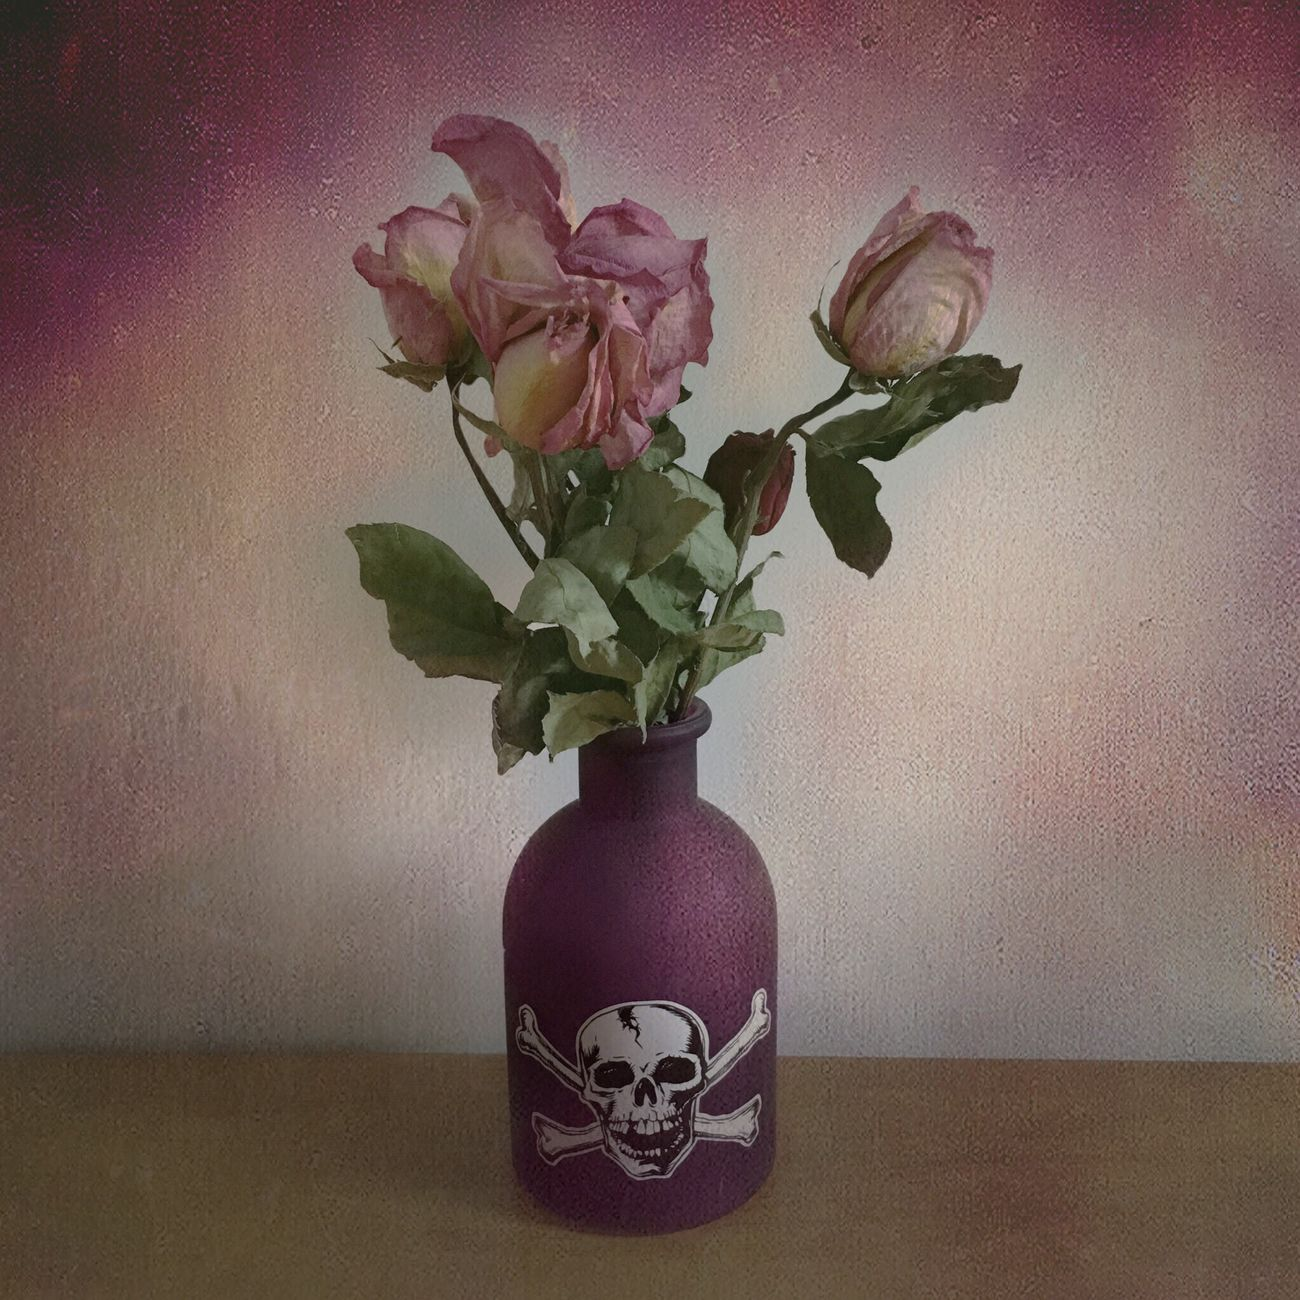 Flowers DeadRoses Purple Pink Deadflowers SkullAndCrossBones ☠🌹☠